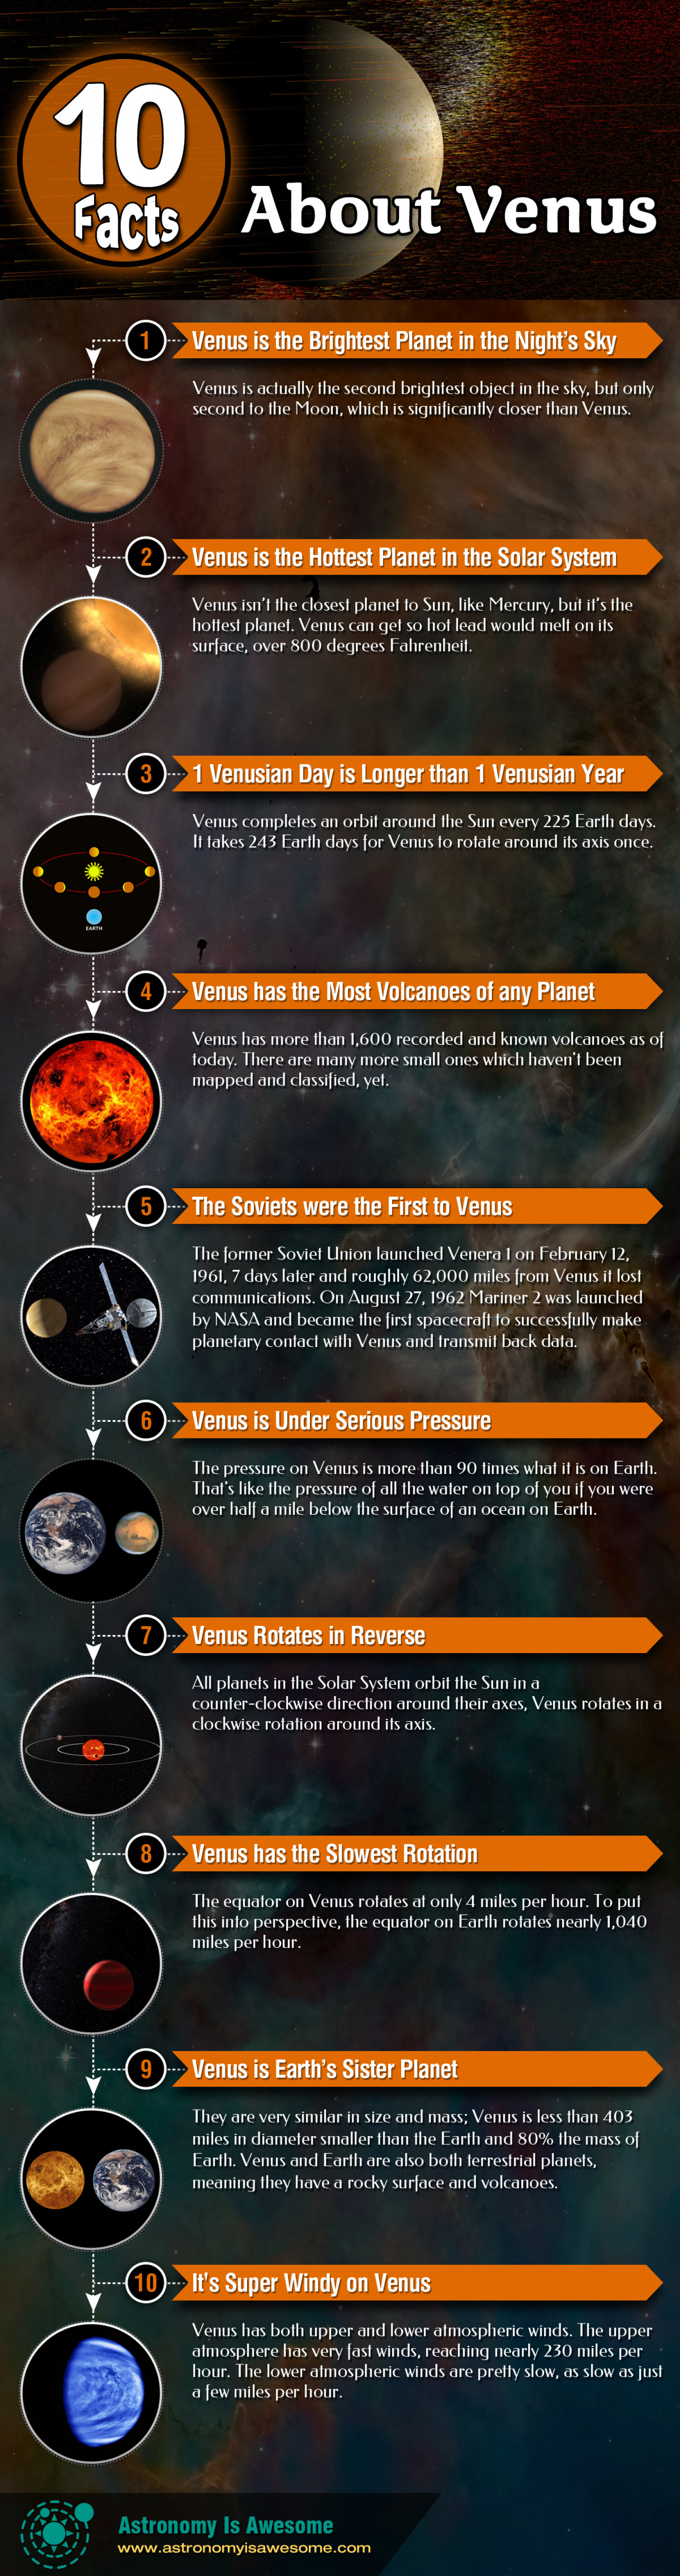 10 Facts About Venus | Visual.ly